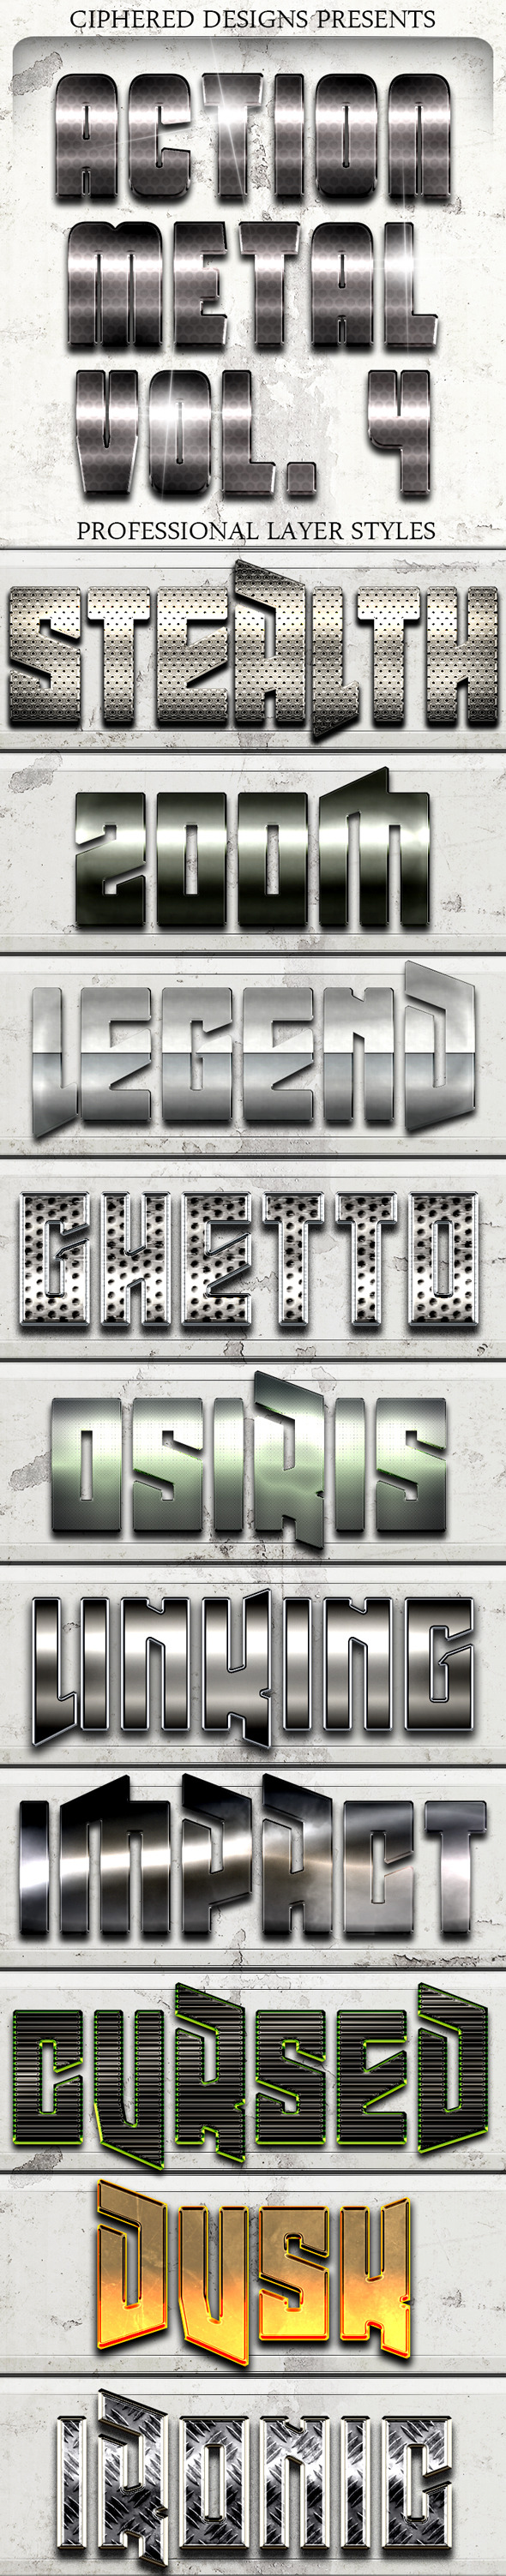 Action Metal 04 - Pro Text Effects